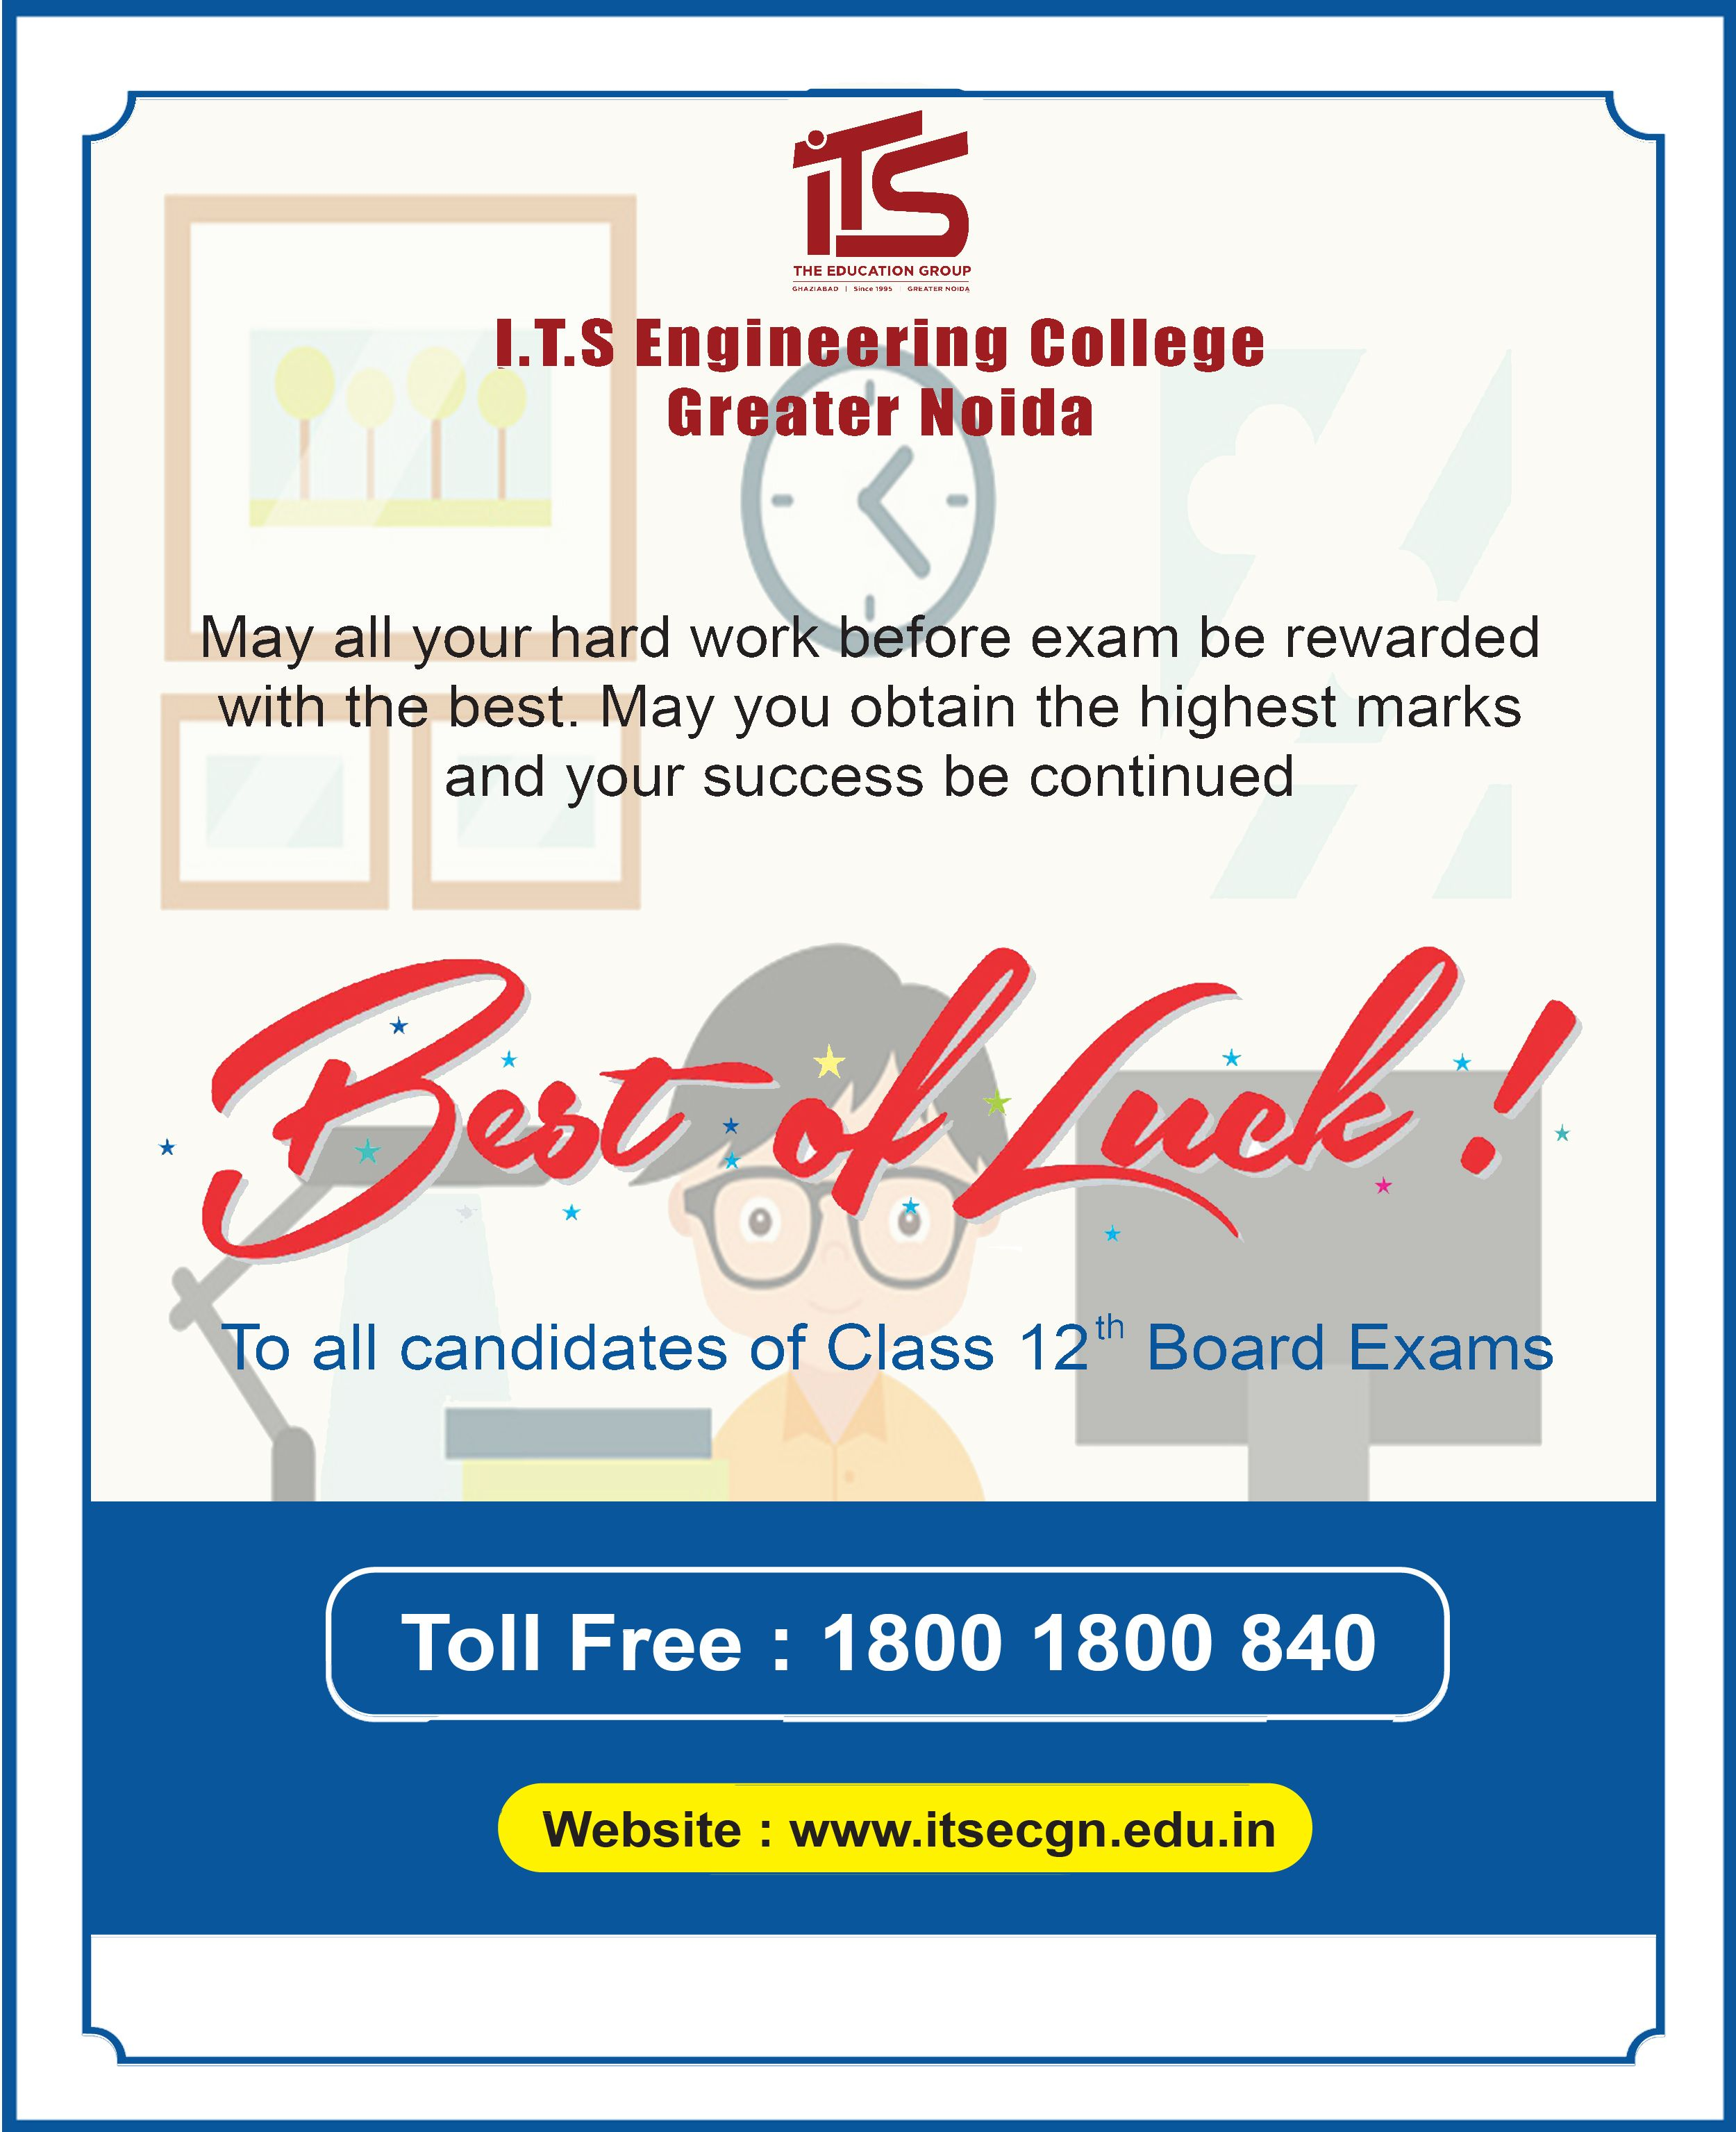 May all your hard work before exam be rewarded with the best